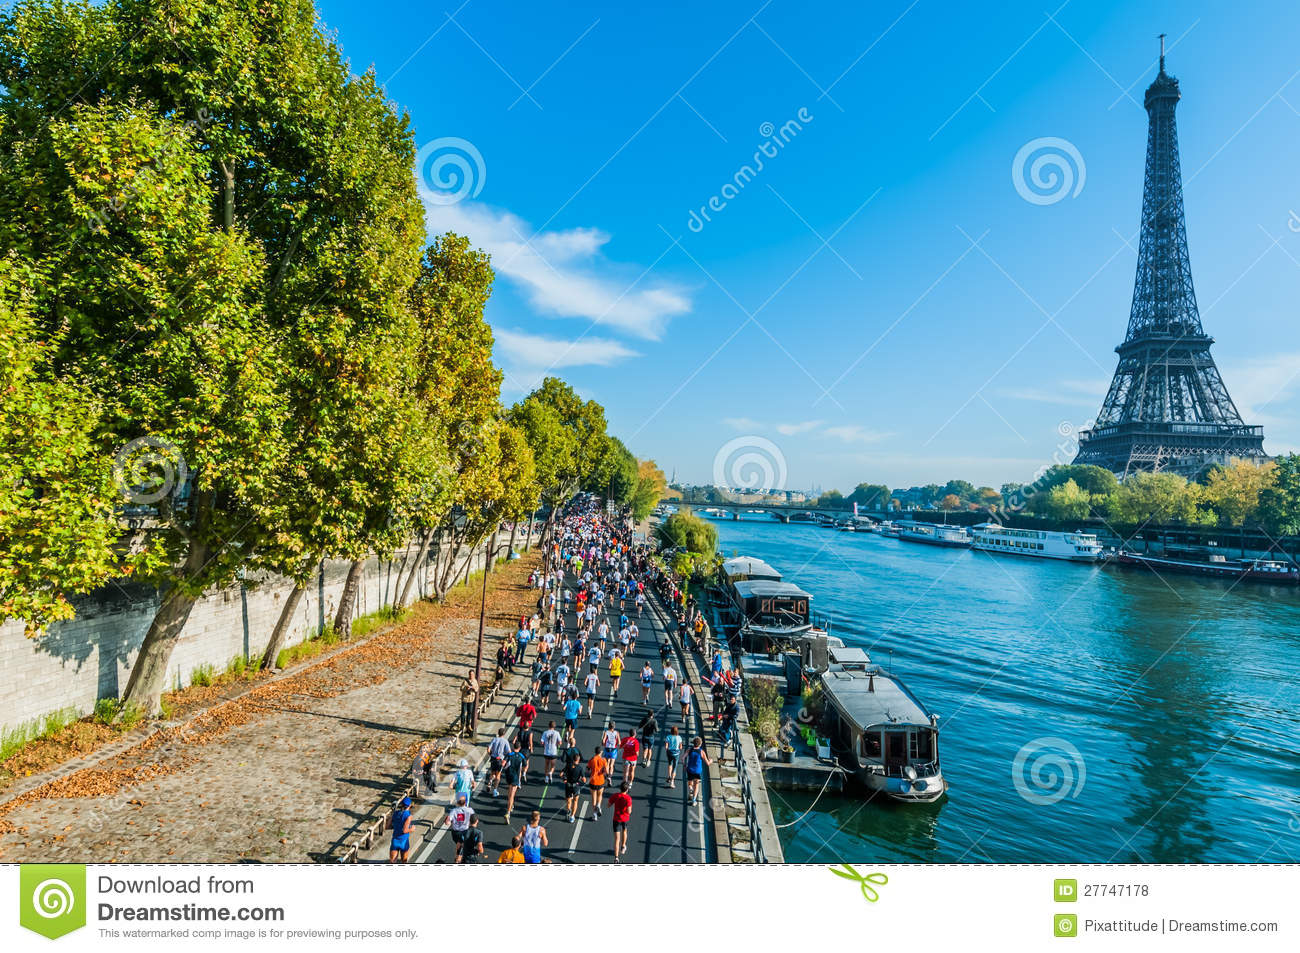 people-running-paris-marathon-france-27747178